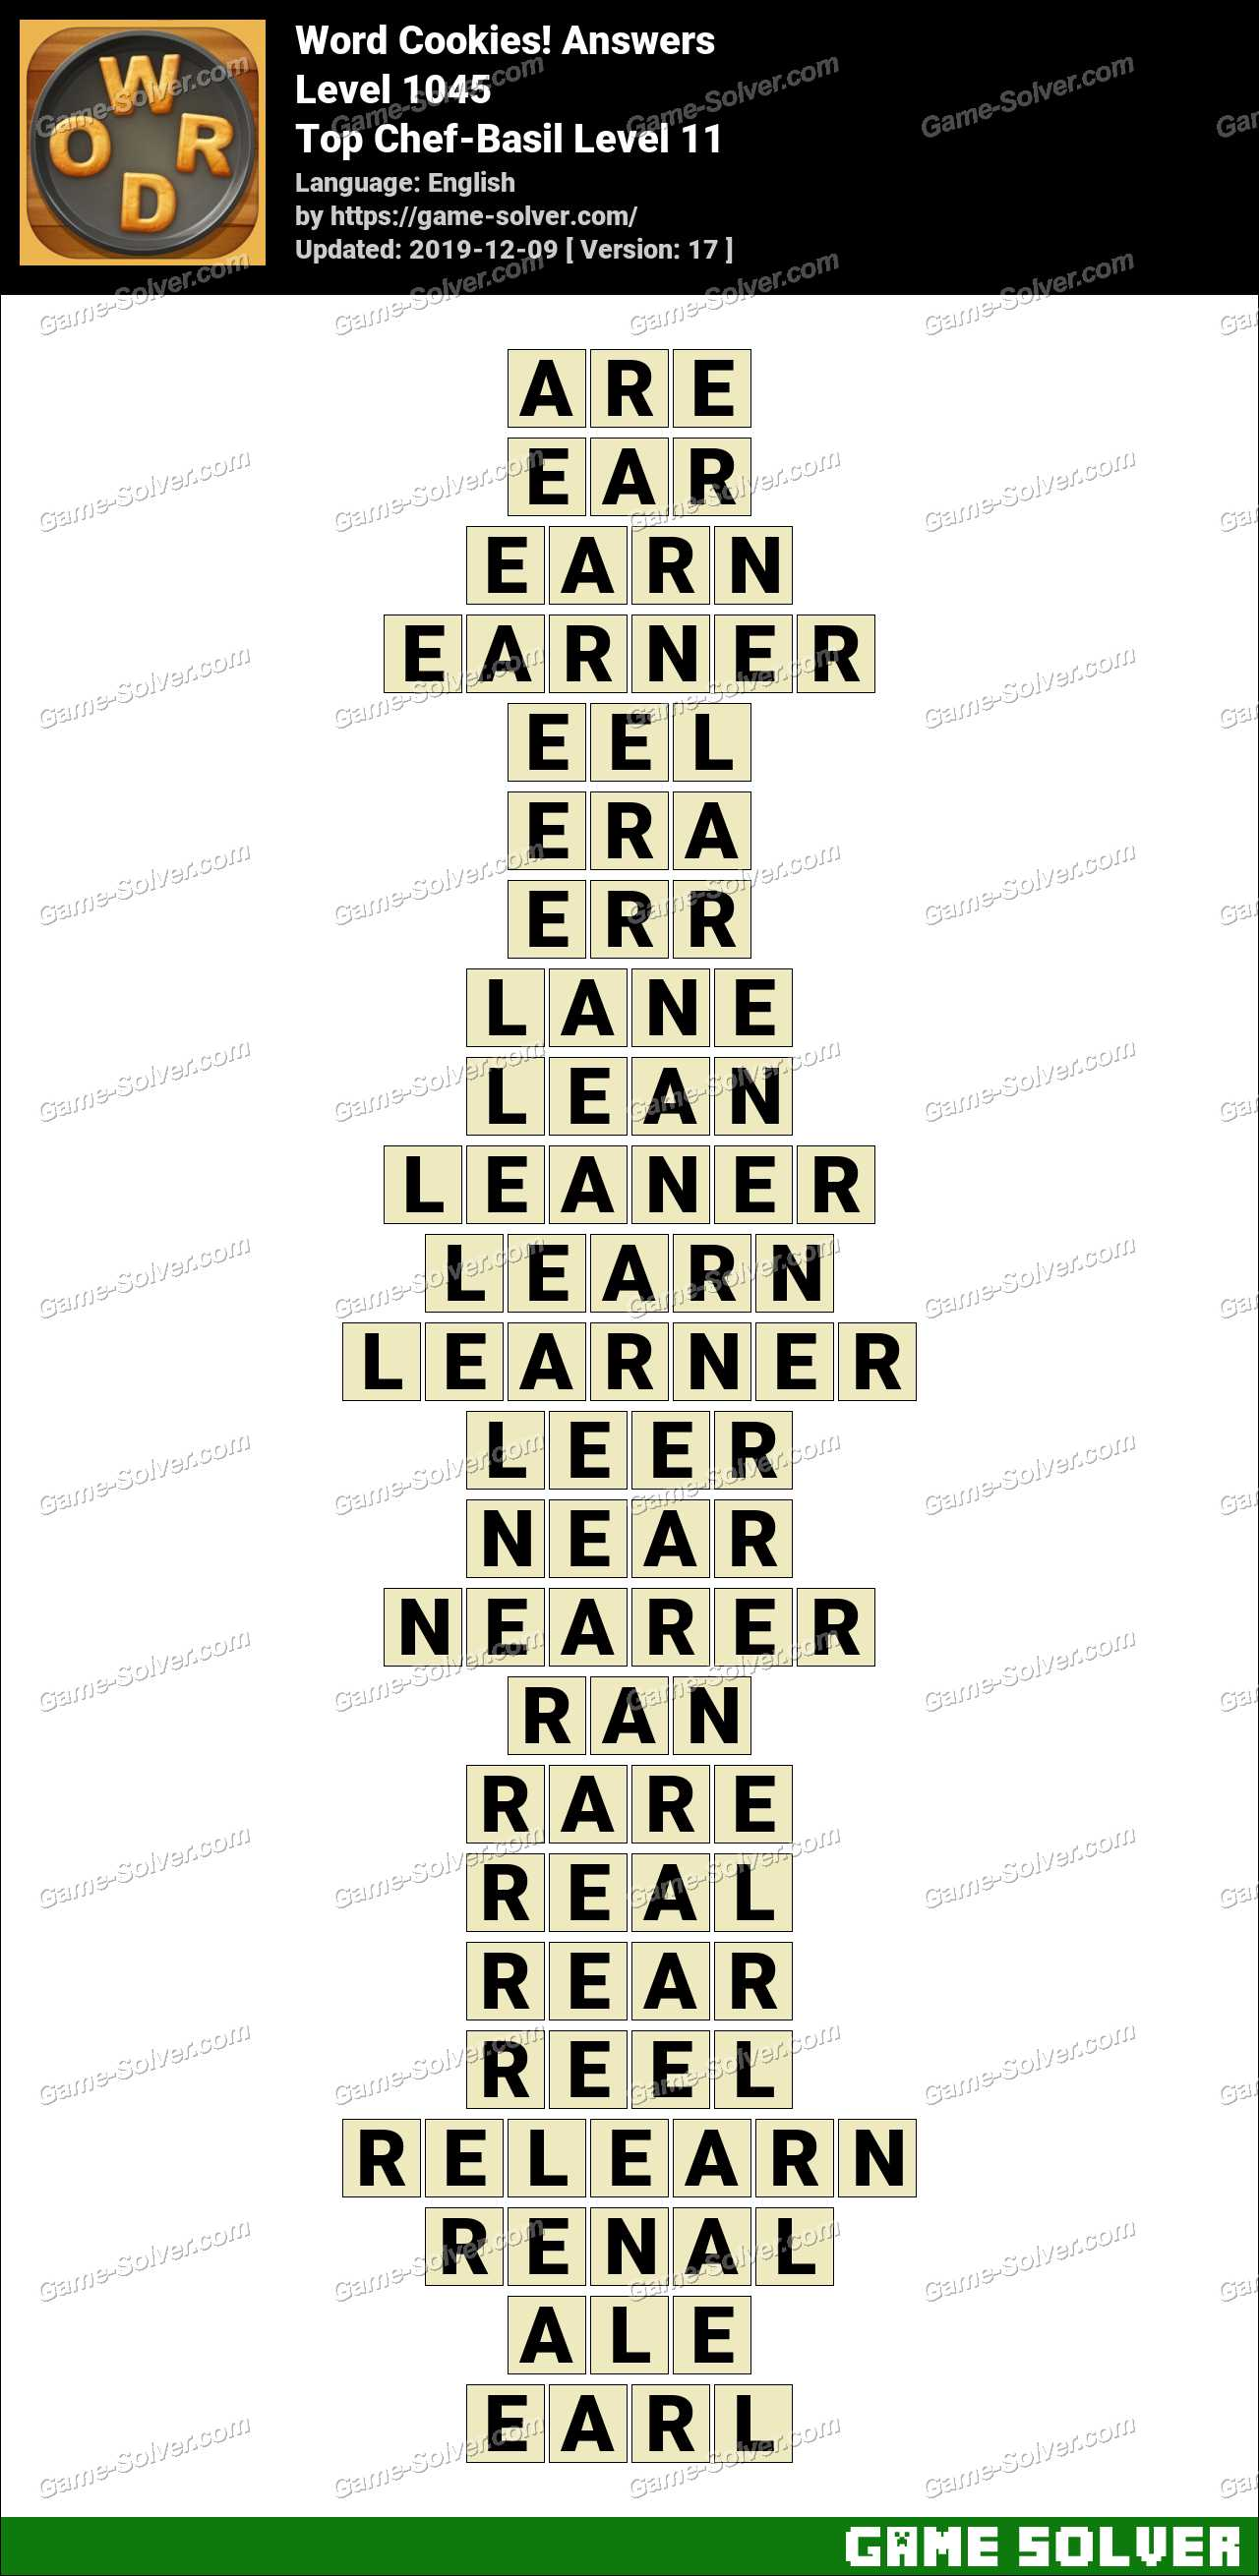 Word Cookies Top Chef-Basil Level 11 Answers